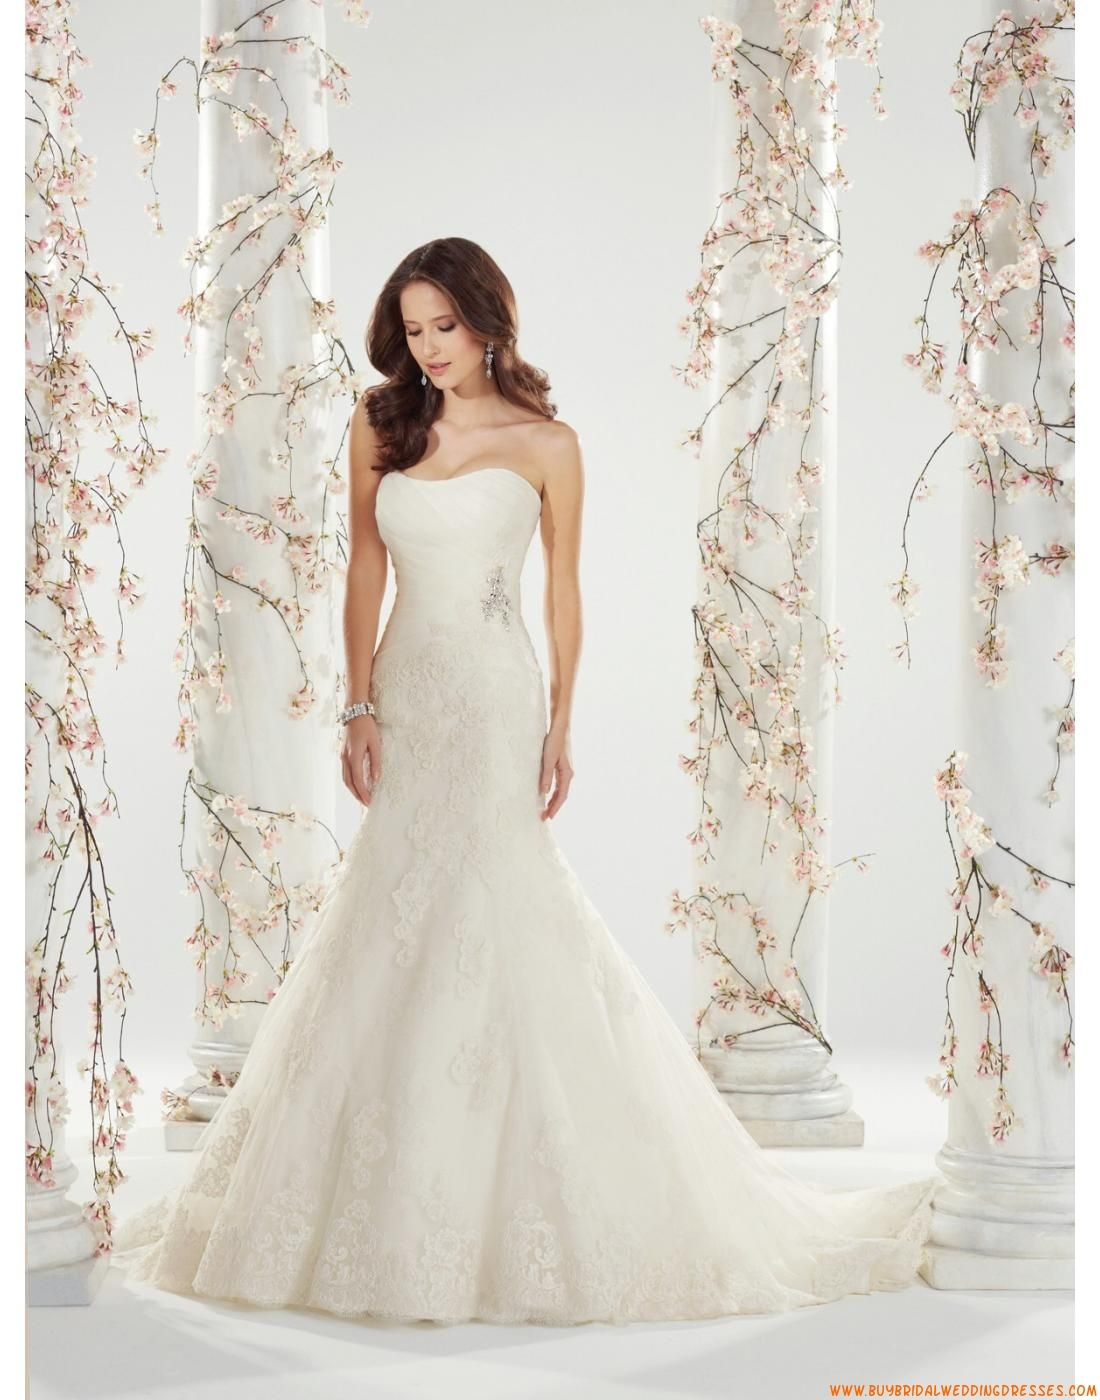 Strapless Sophia Tolli Wedding Dresses - Style Shireen Y11410